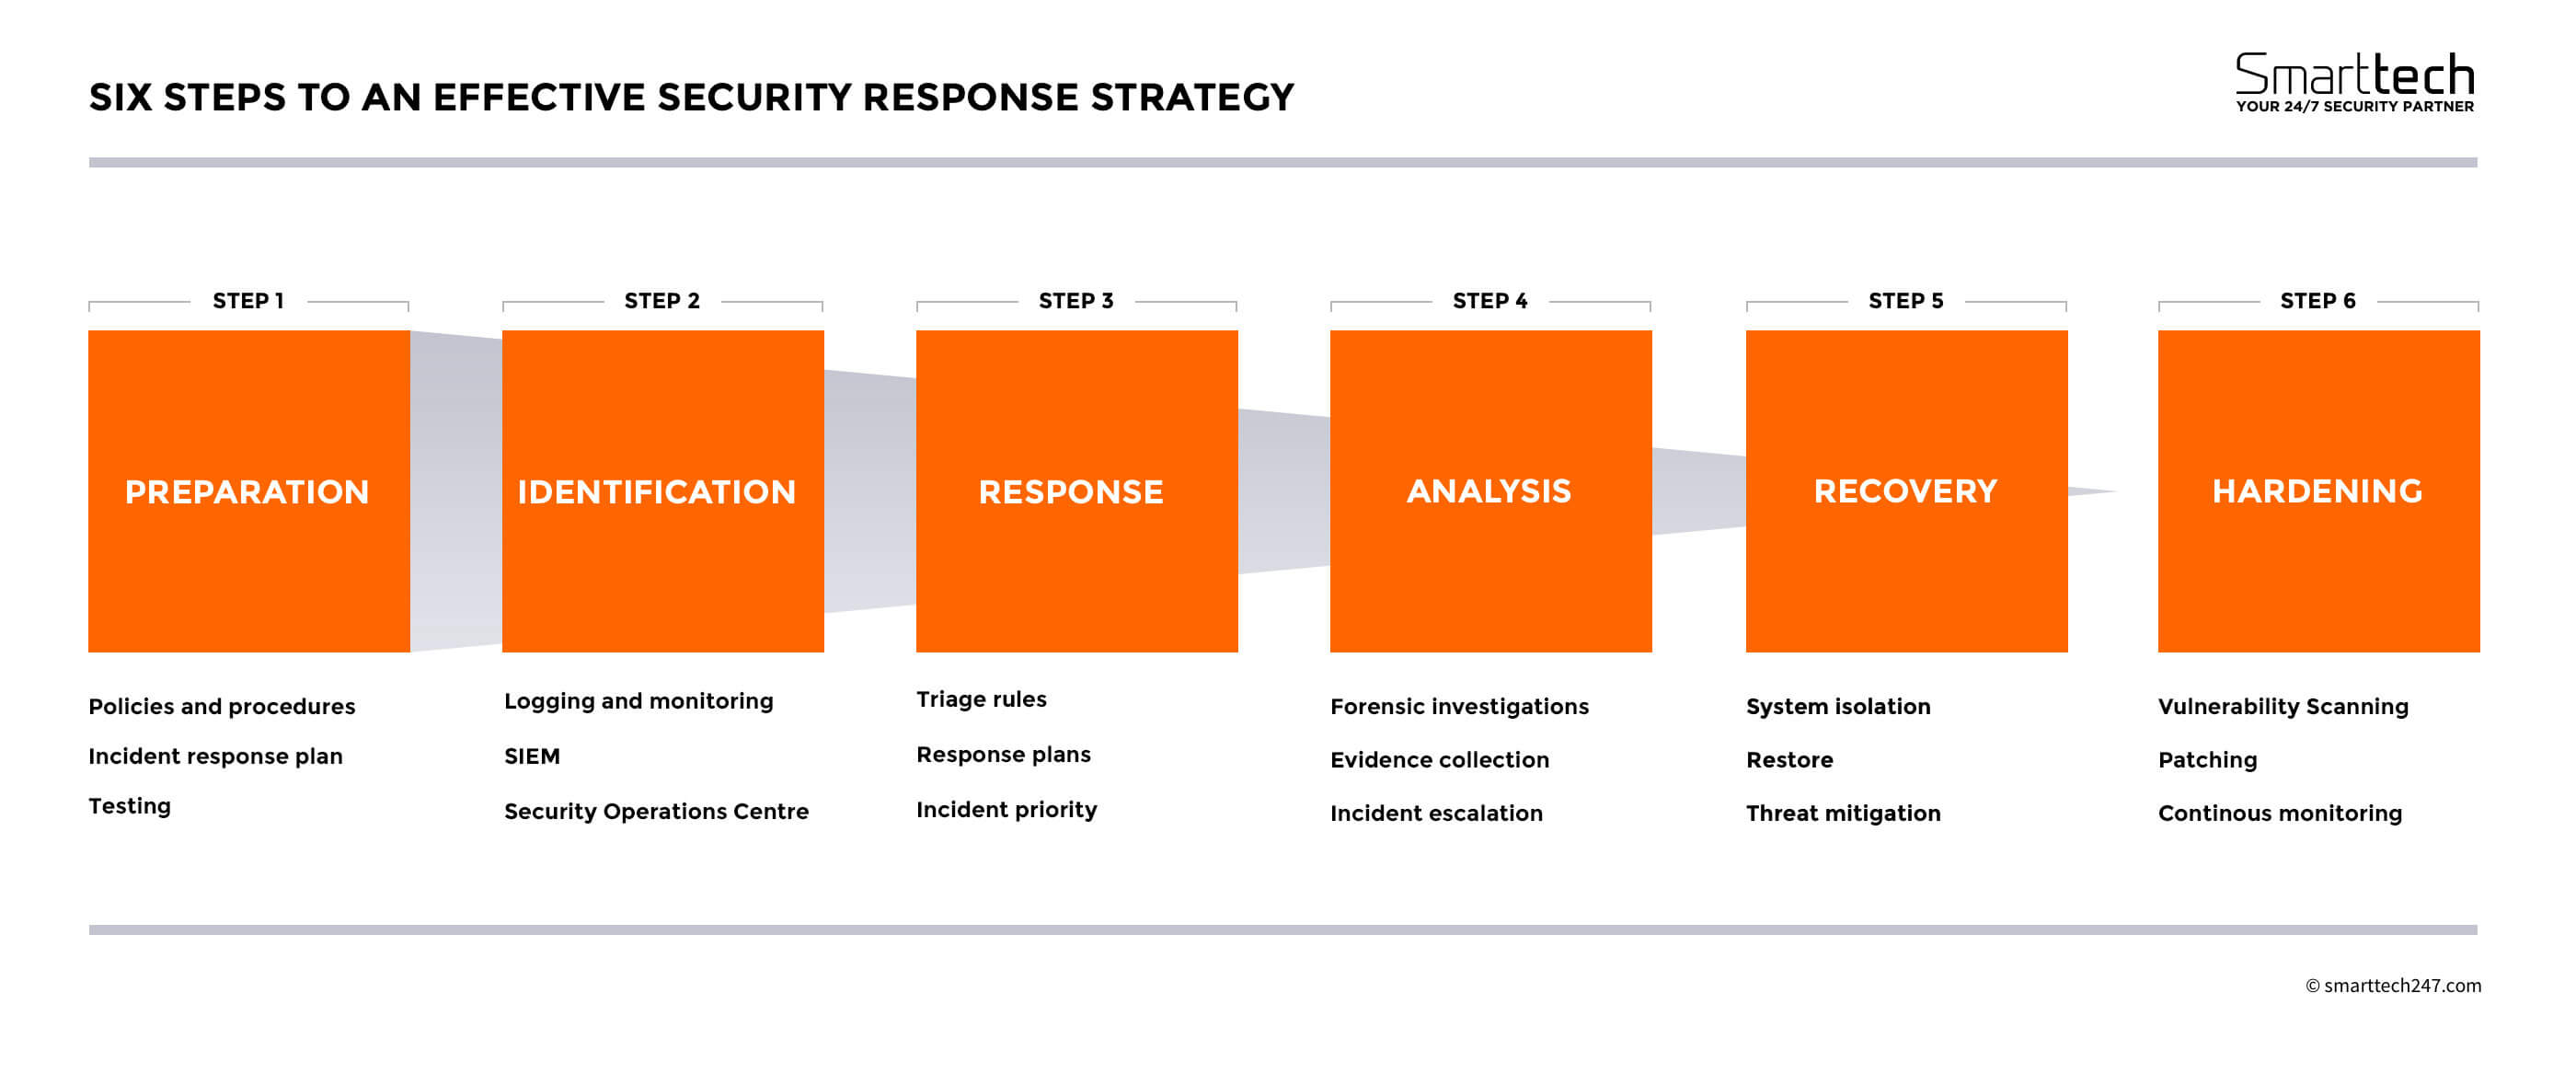 Six Steps To An Effective Security Response Strategy